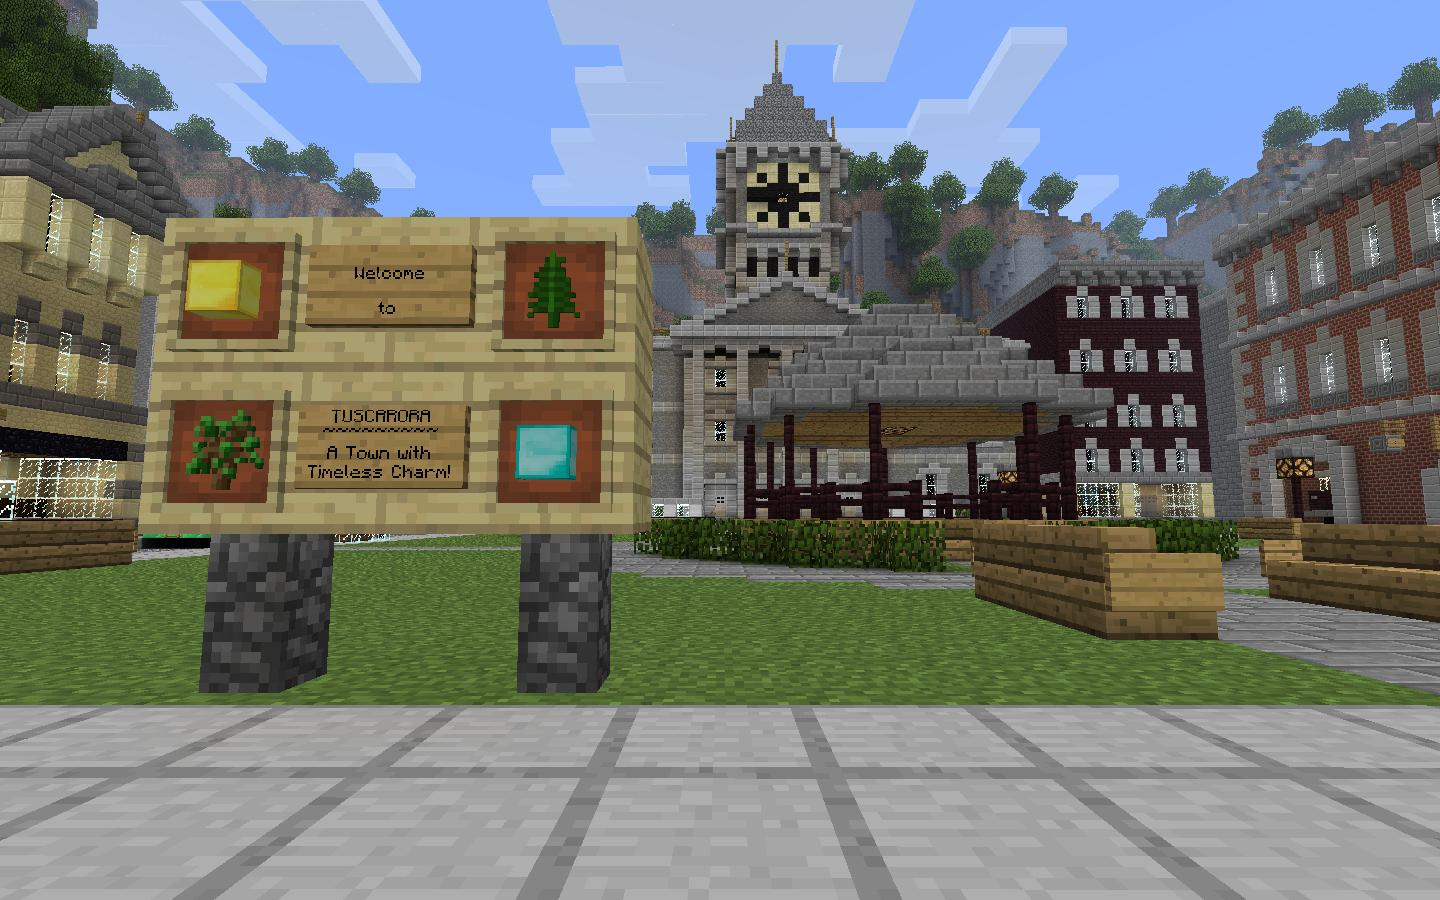 http://minecraft-forum.net/wp-content/uploads/2013/08/63348__A-Day-in-Tuscarora-Map-1.jpg